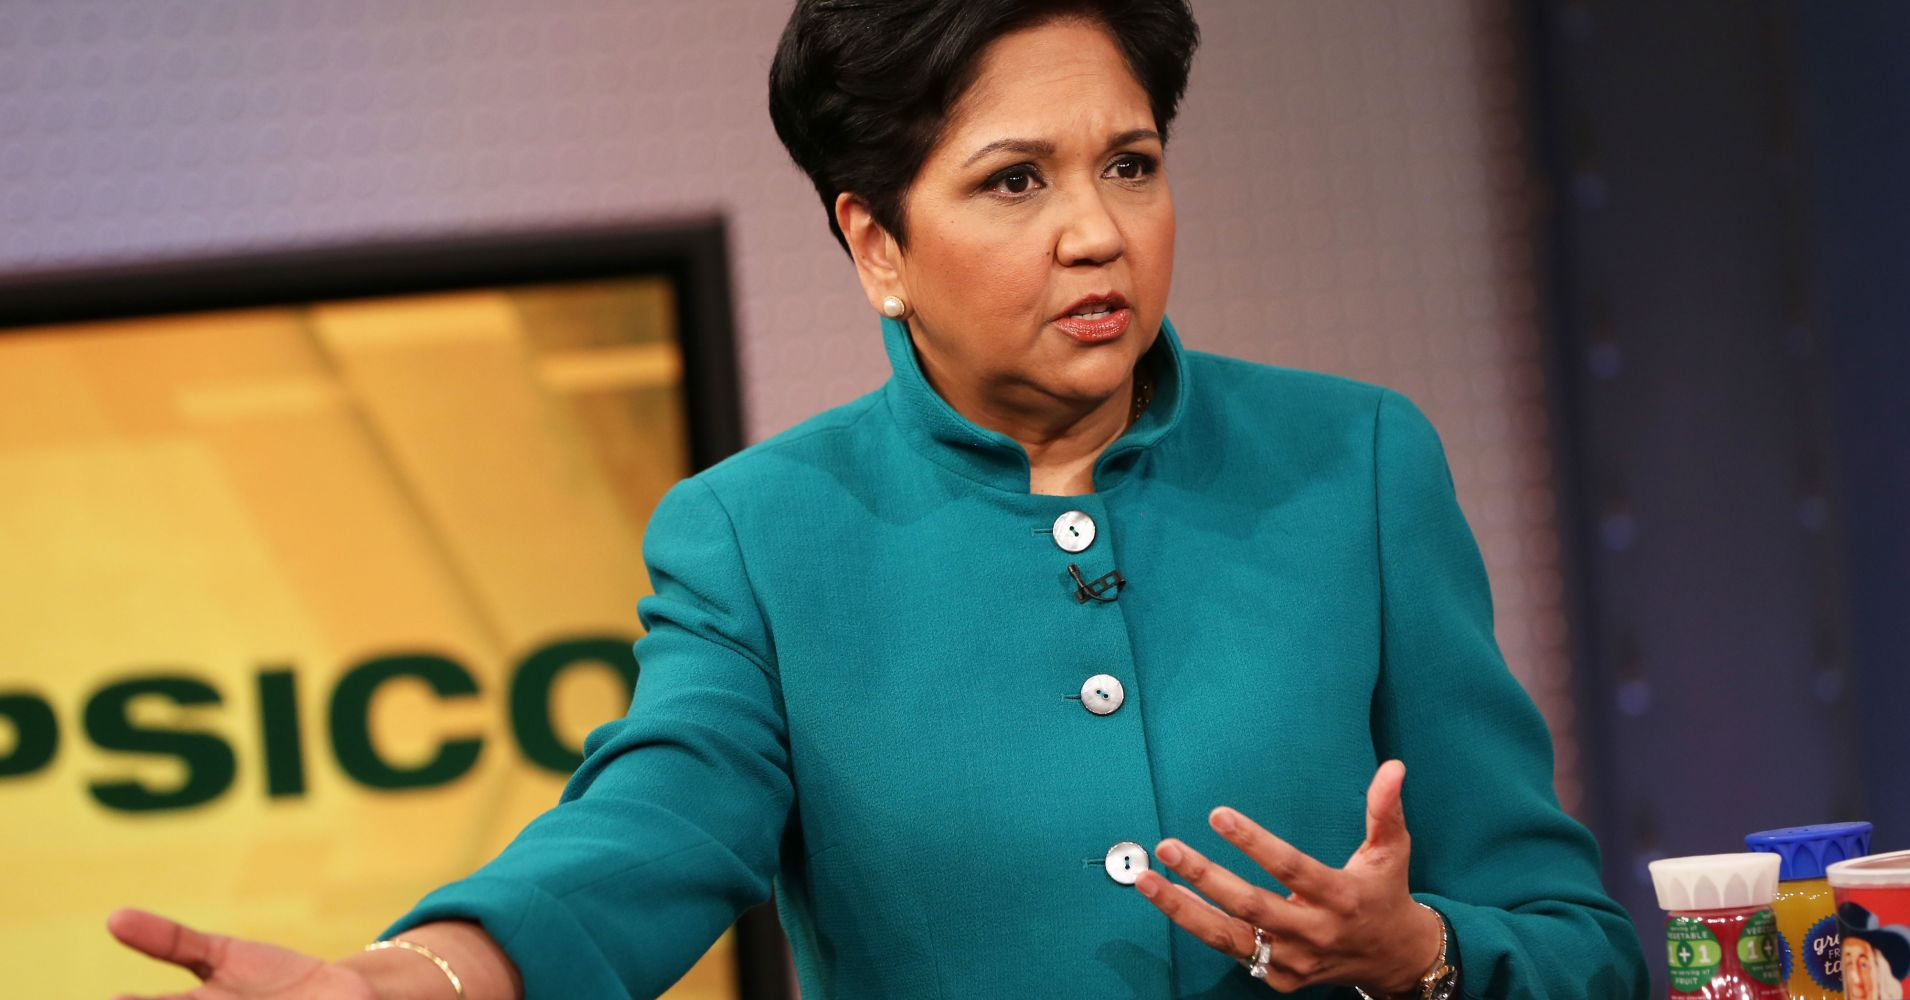 Amazon Names Former Pepsi Ceo Indra Nooyi As New Board Member photo